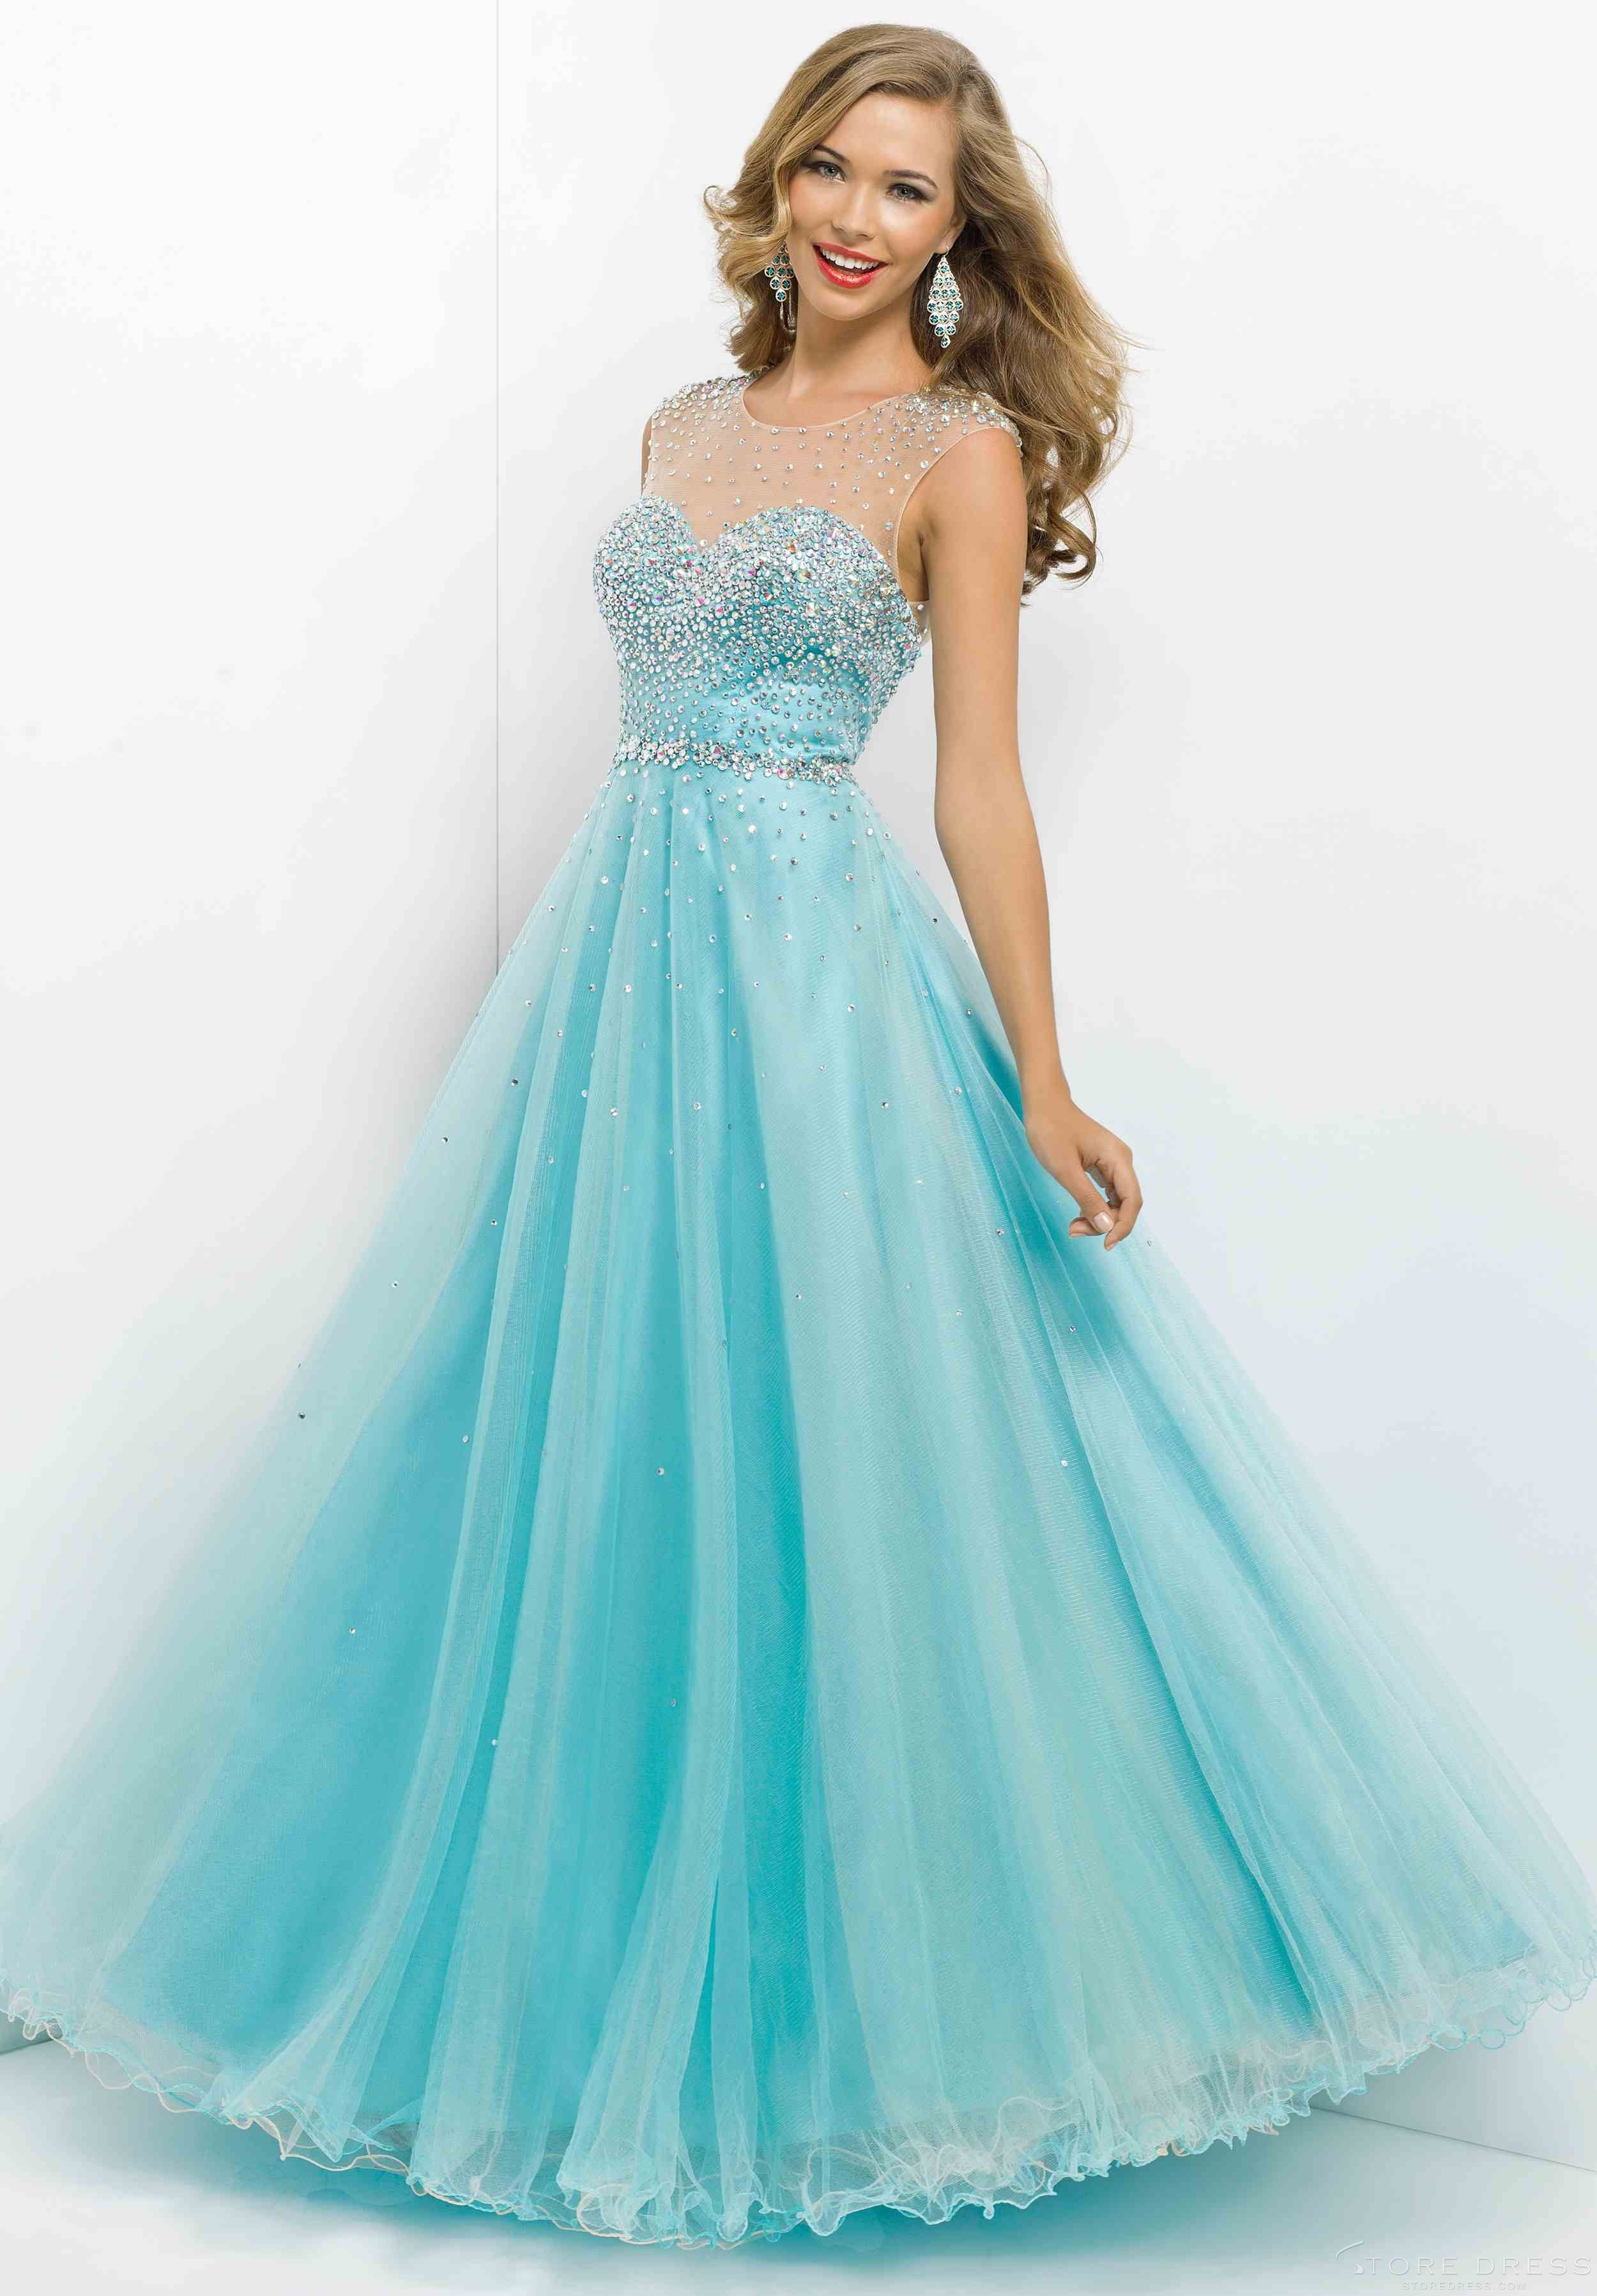 teen prom dresses - Google Search | Tween Teen Prom Dresses ...